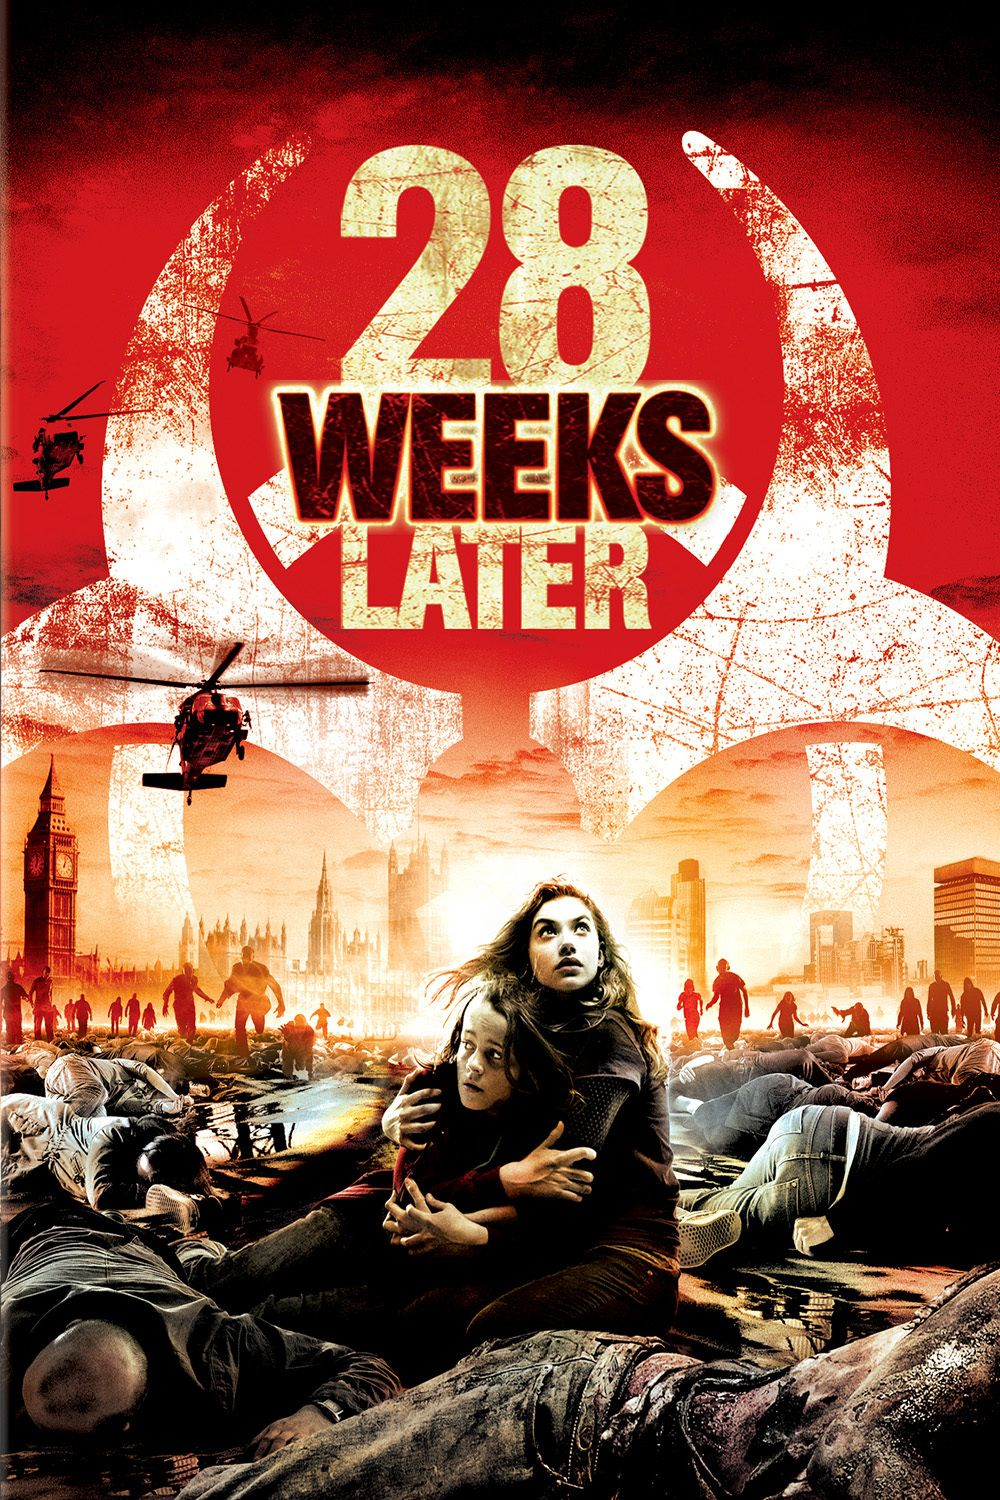 click image to watch 28 Weeks Later (2007) Free movies